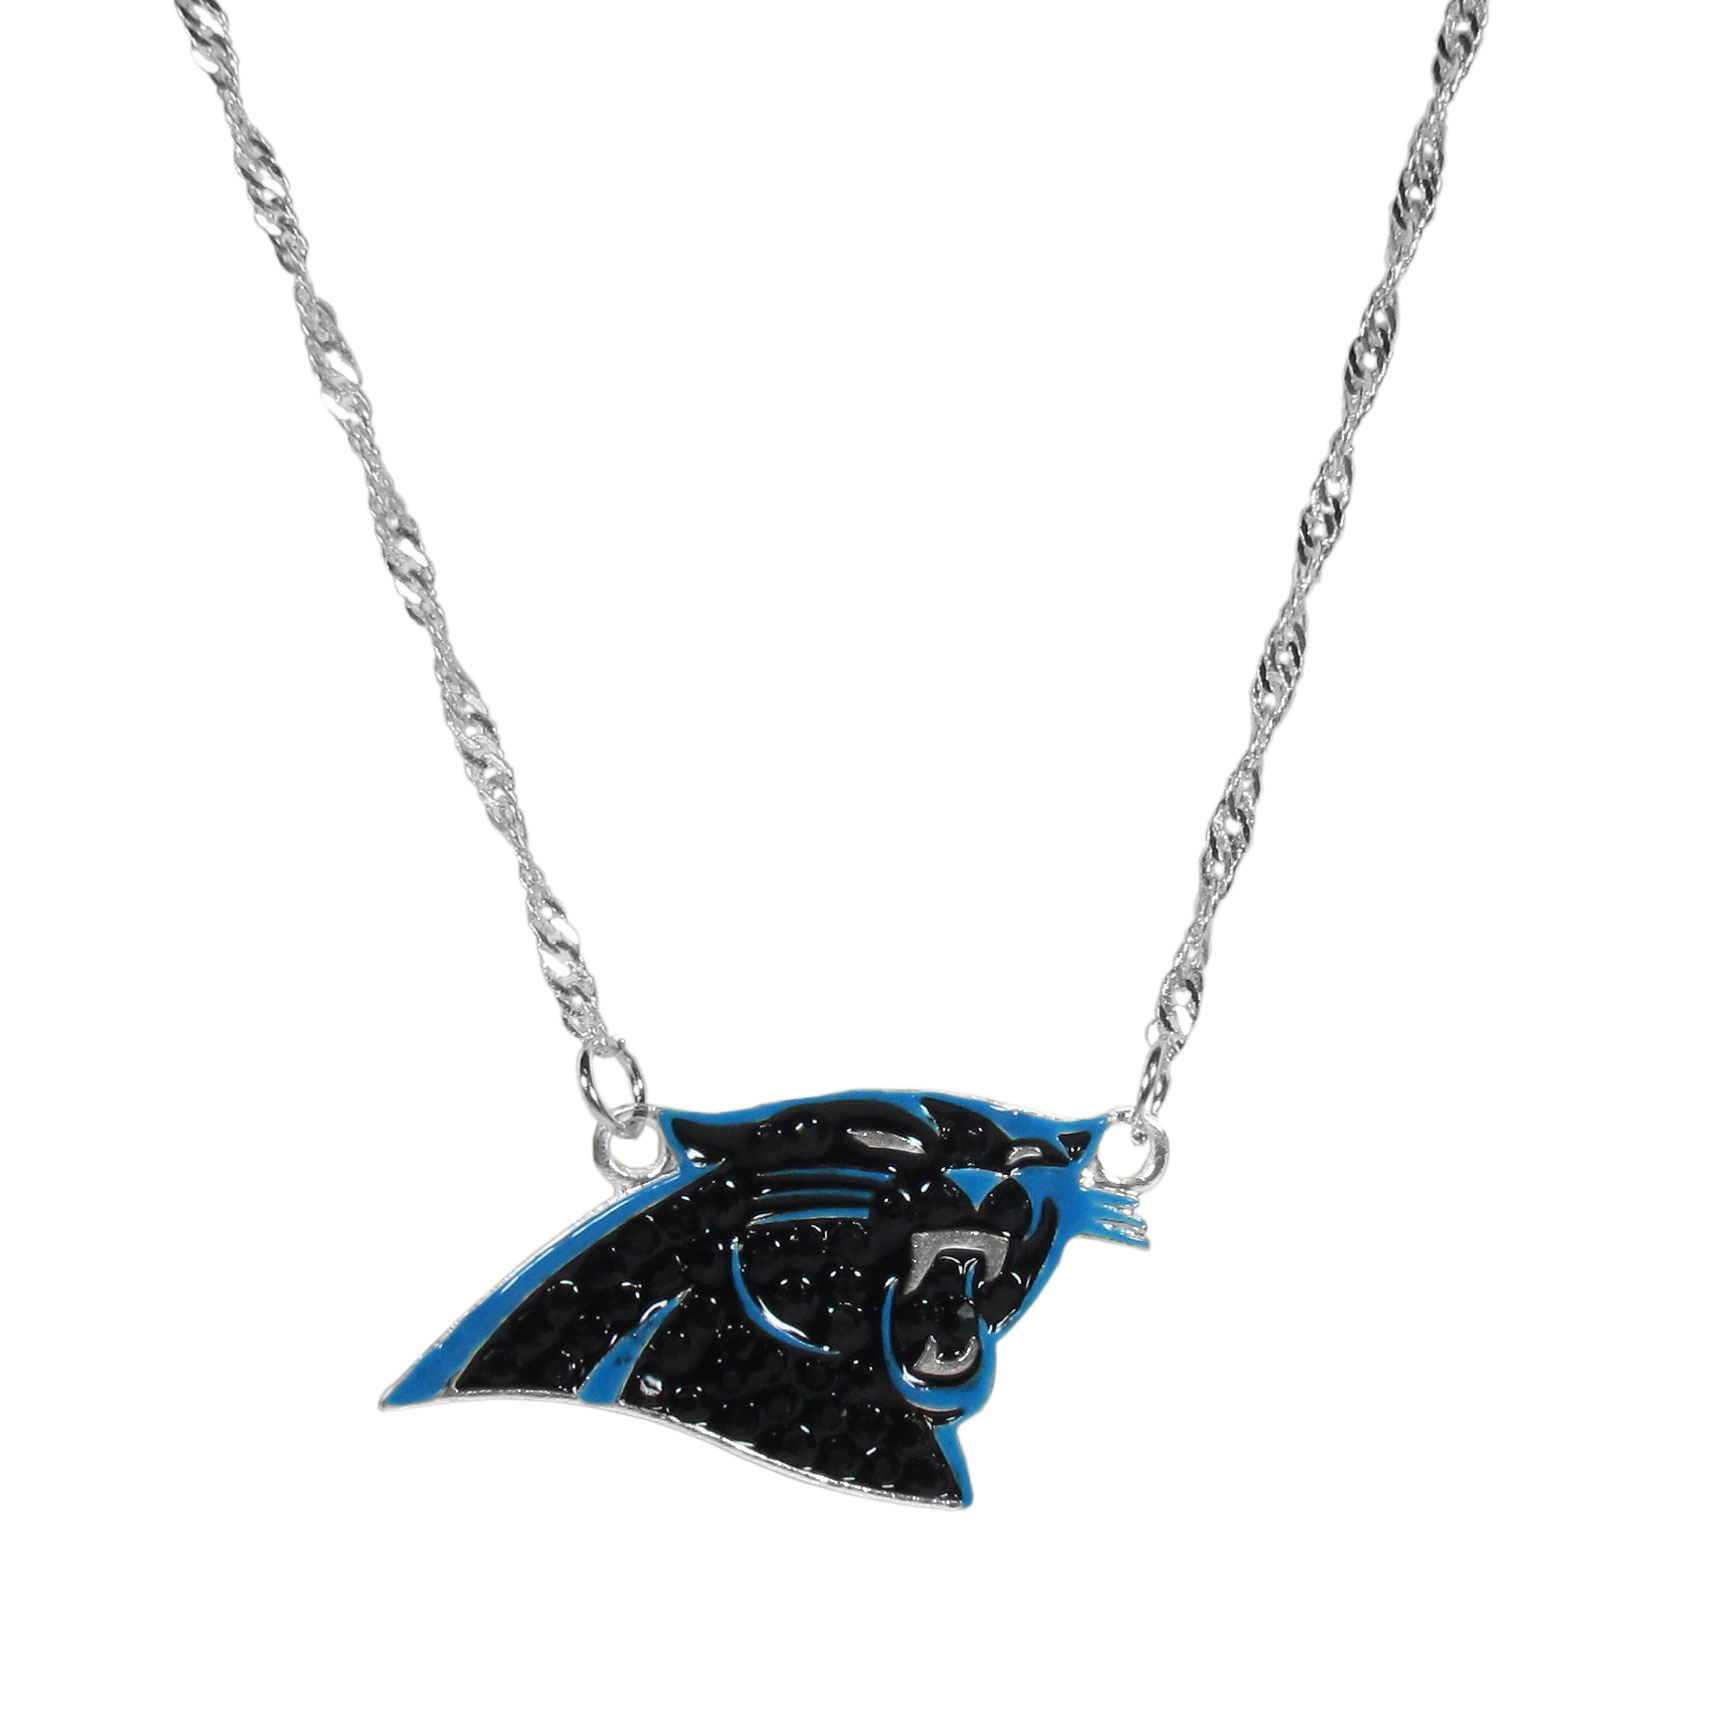 Carolina Panthers Crystal Logo Necklace - This is a must-have fan accessory with a delicately beautiful 16 inch silver plated chain and eye-catching, large Carolina Panthers charm with tons of sparkling team colored crystals. The trendy look is finished with detailed team colors and the chain can be adjusted with a 2 inch extender. The bold look makes a statement on game day and the classic style is chic enough for everyday.